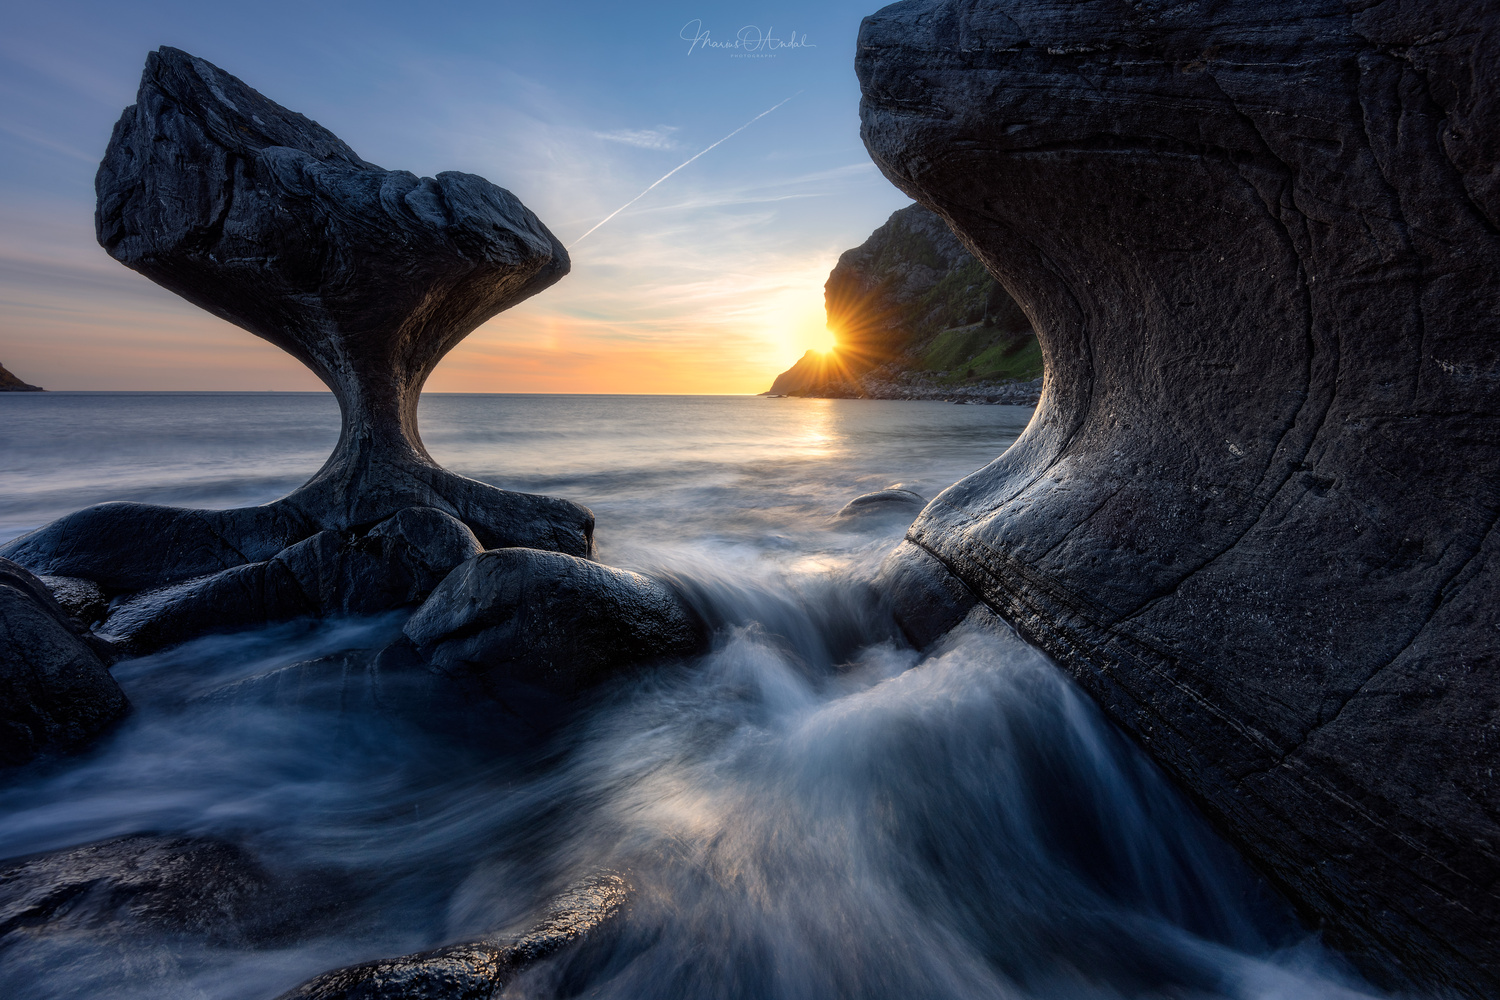 Tide by Marius Andal